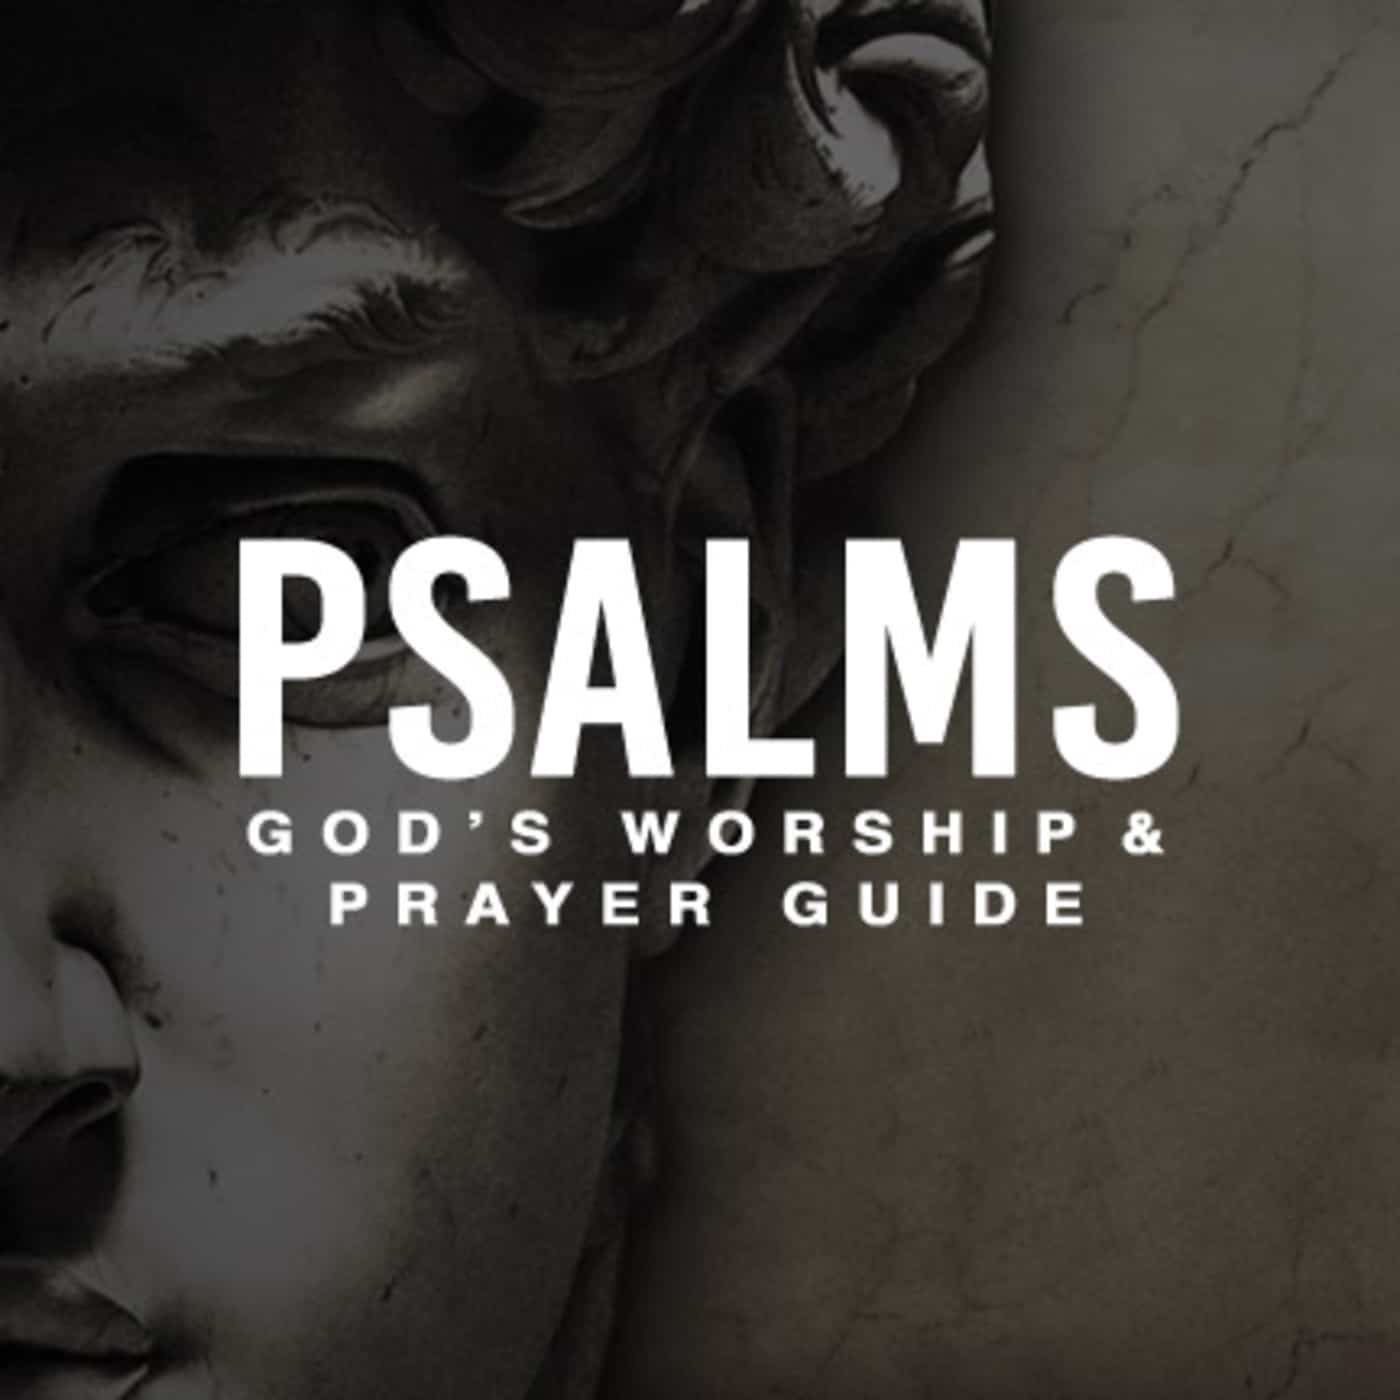 Psalms: God's Worship and Prayer Guide